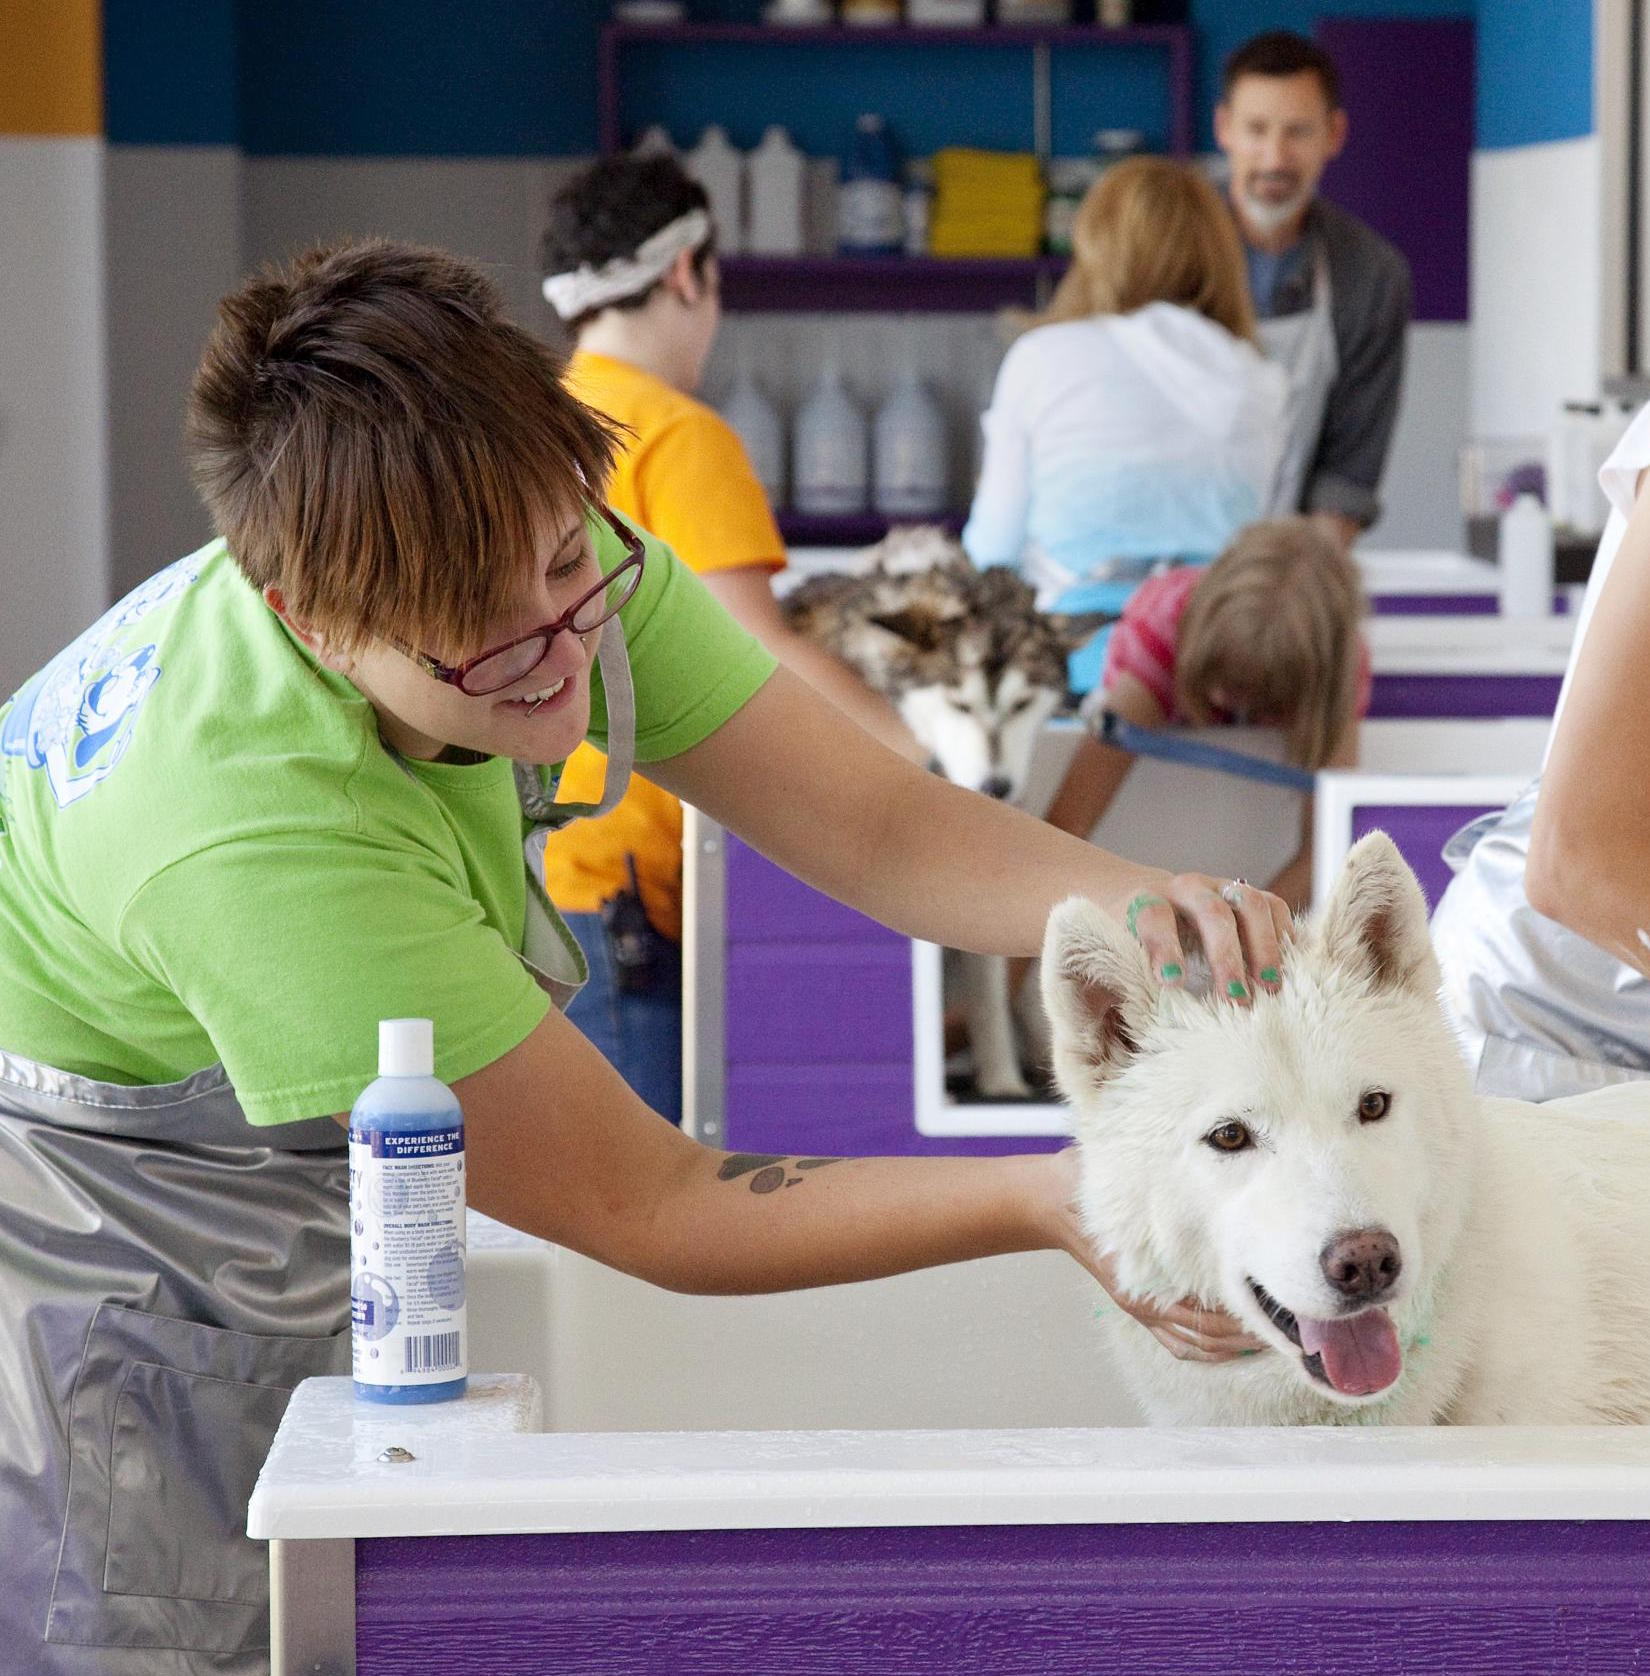 Fullbark community bark dog wash and dog groomer service campaign image solutioingenieria Image collections